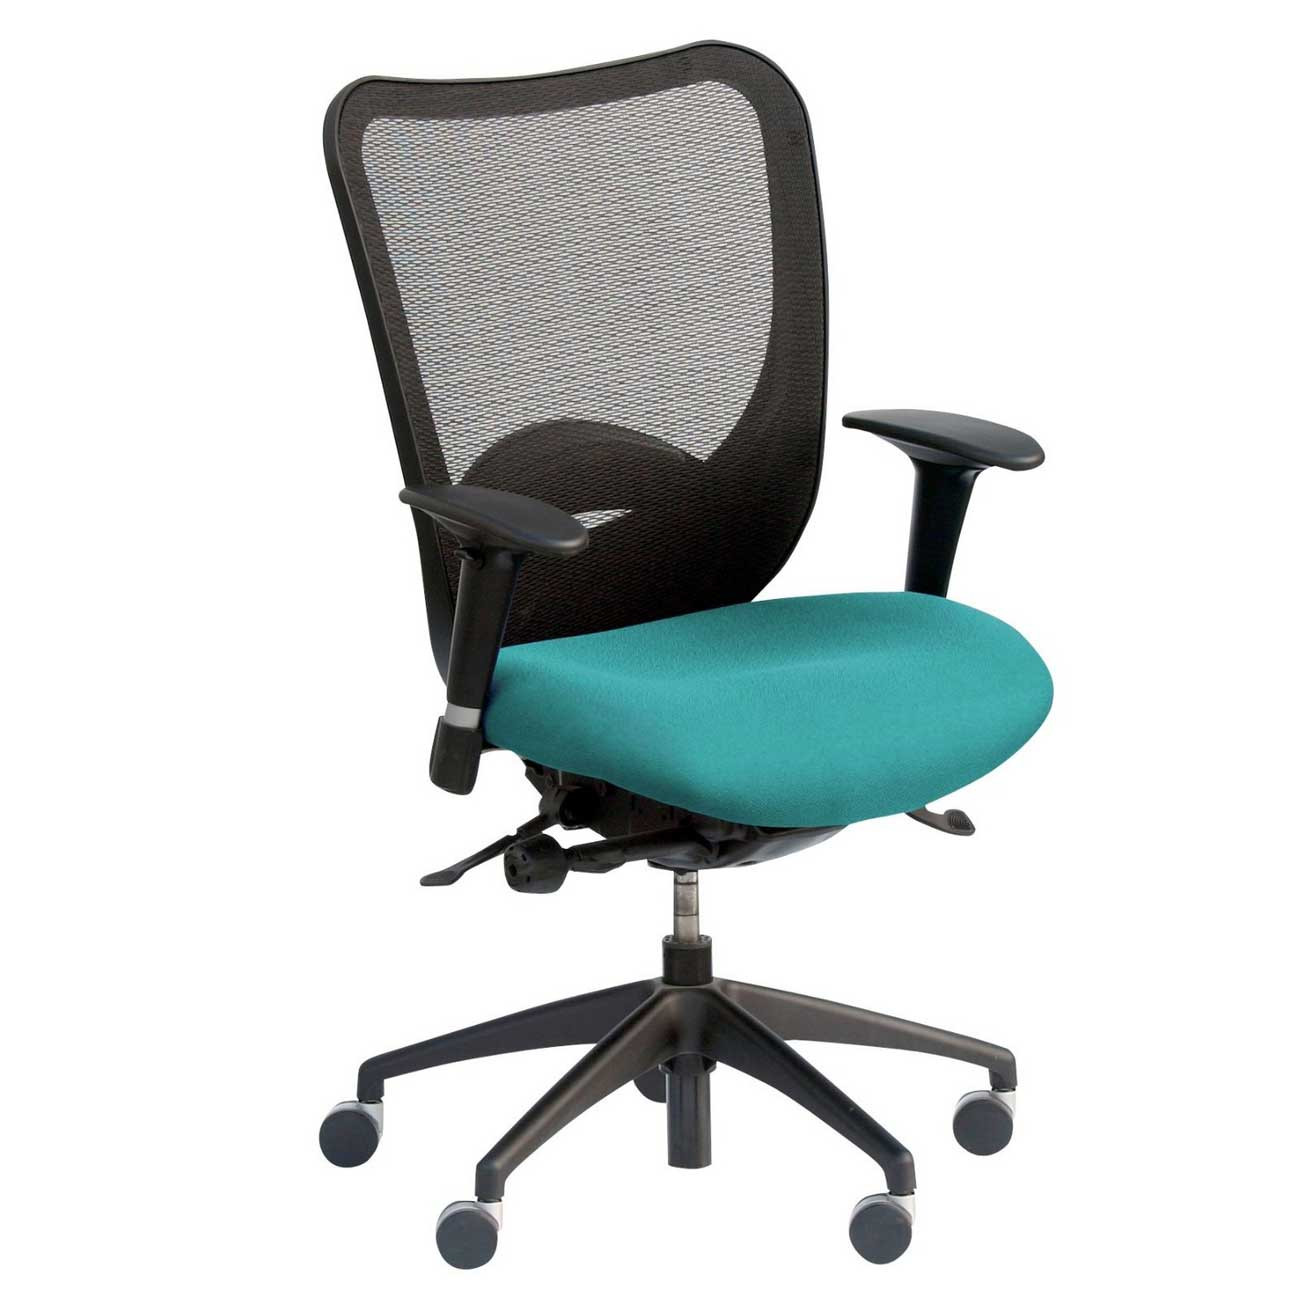 Best ideas about Cheap Desk Chair . Save or Pin Cheap Desk Chair as Wise Decision Now.